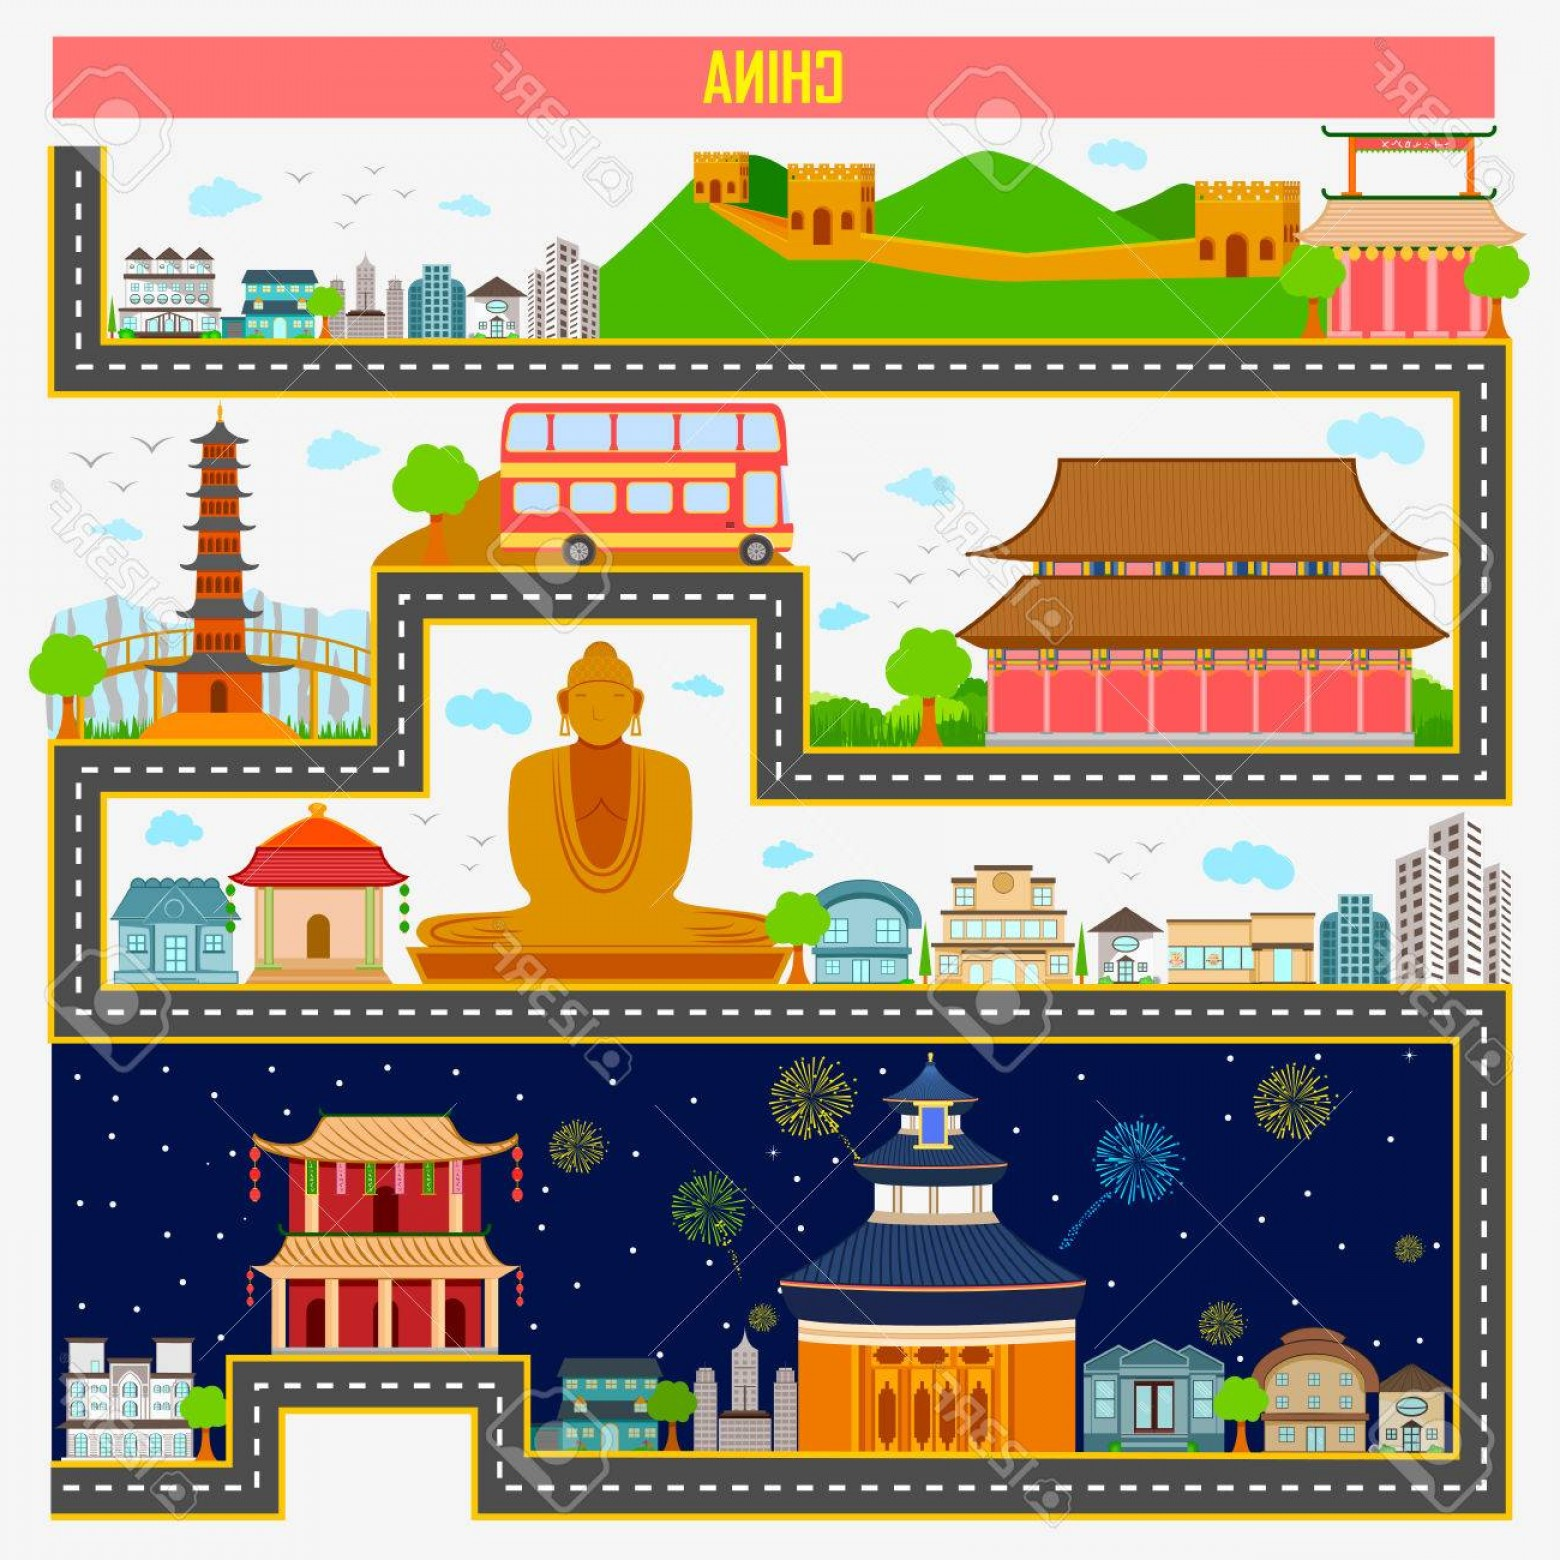 Famous Easy Vectors: Photostock Vector Easy To Edit Vector Illustration Of Cityscape With Famous Monument And Building Of China